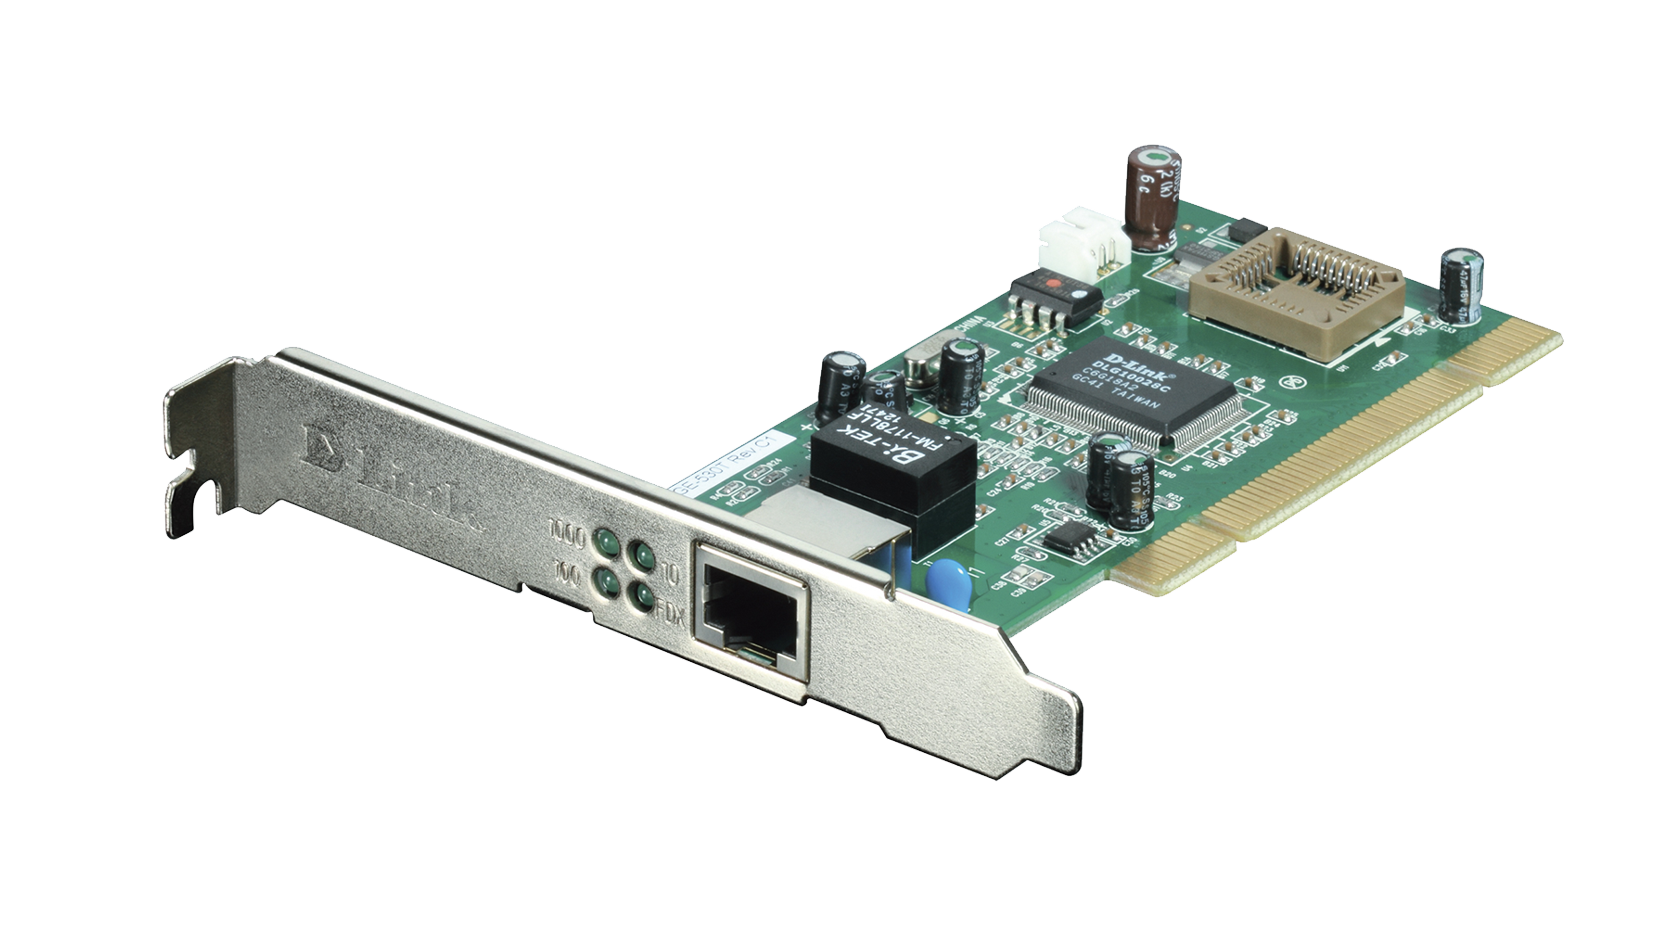 Dge 560t Pci Express Gigabit Ethernet Adapter Indonesia